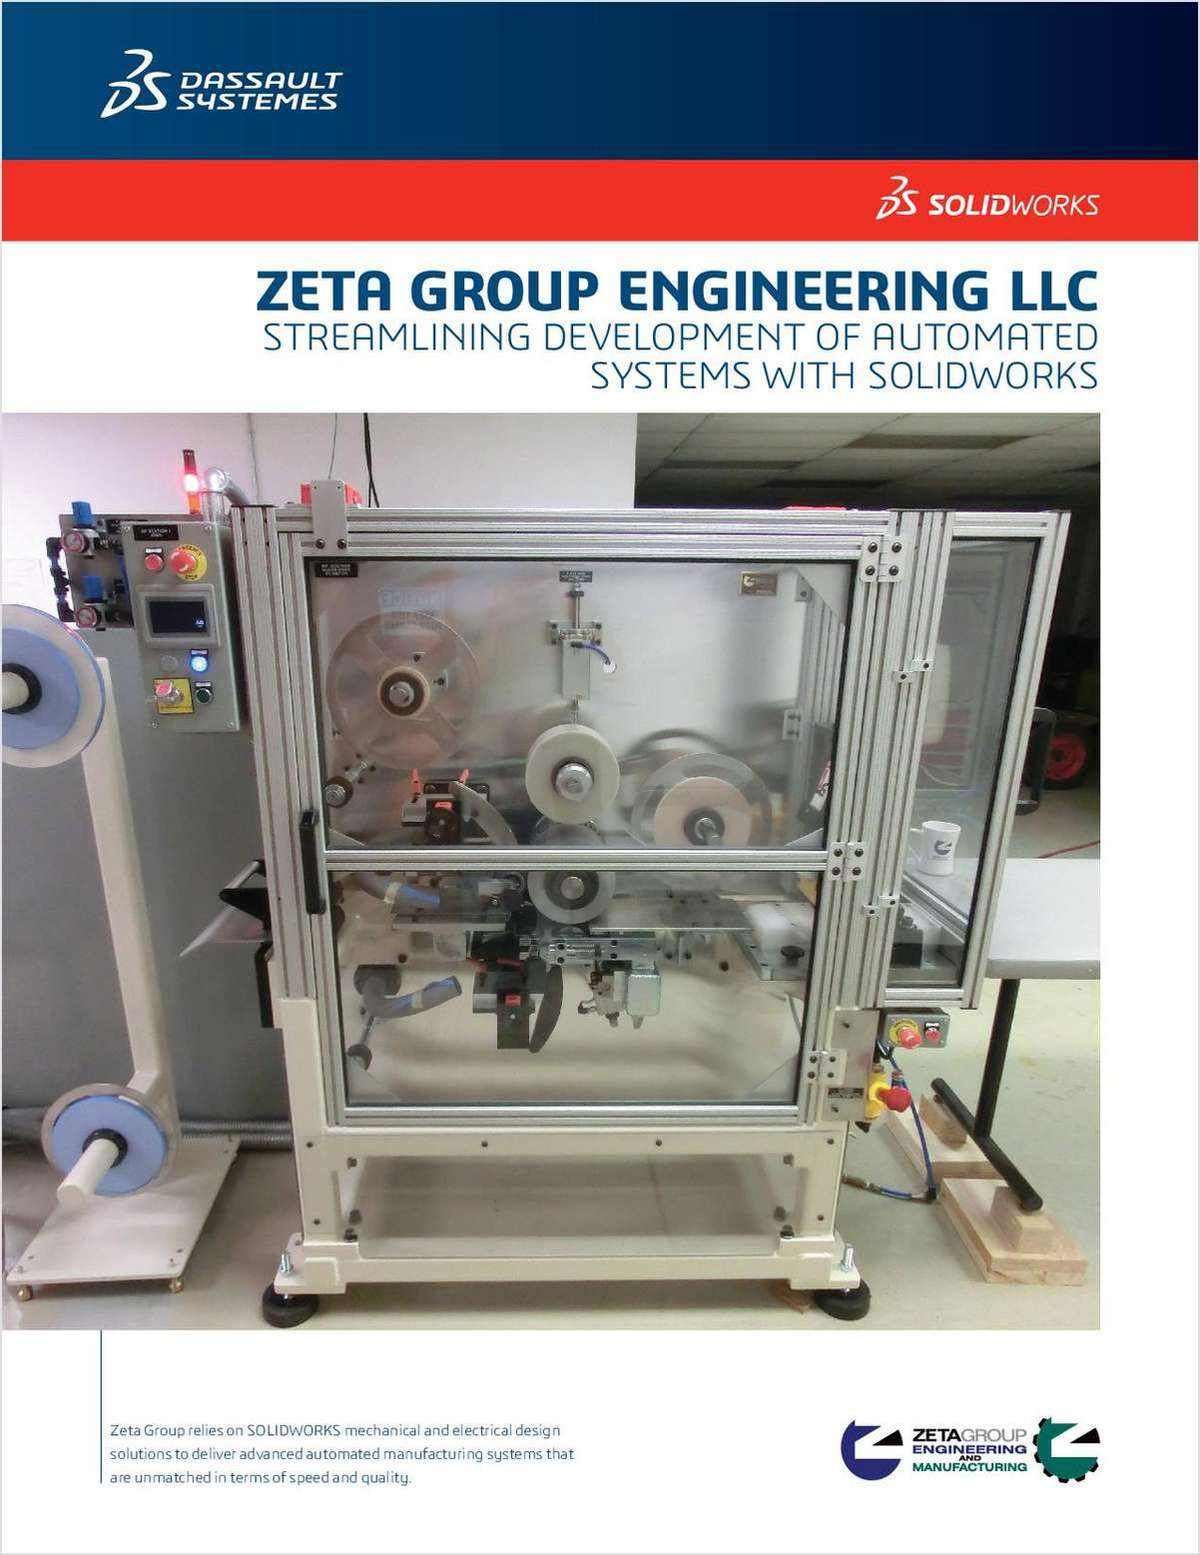 Zeta Group Uses SOLIDWORKS Solutions to Establish and Grow an Automation and Manufacturing Business